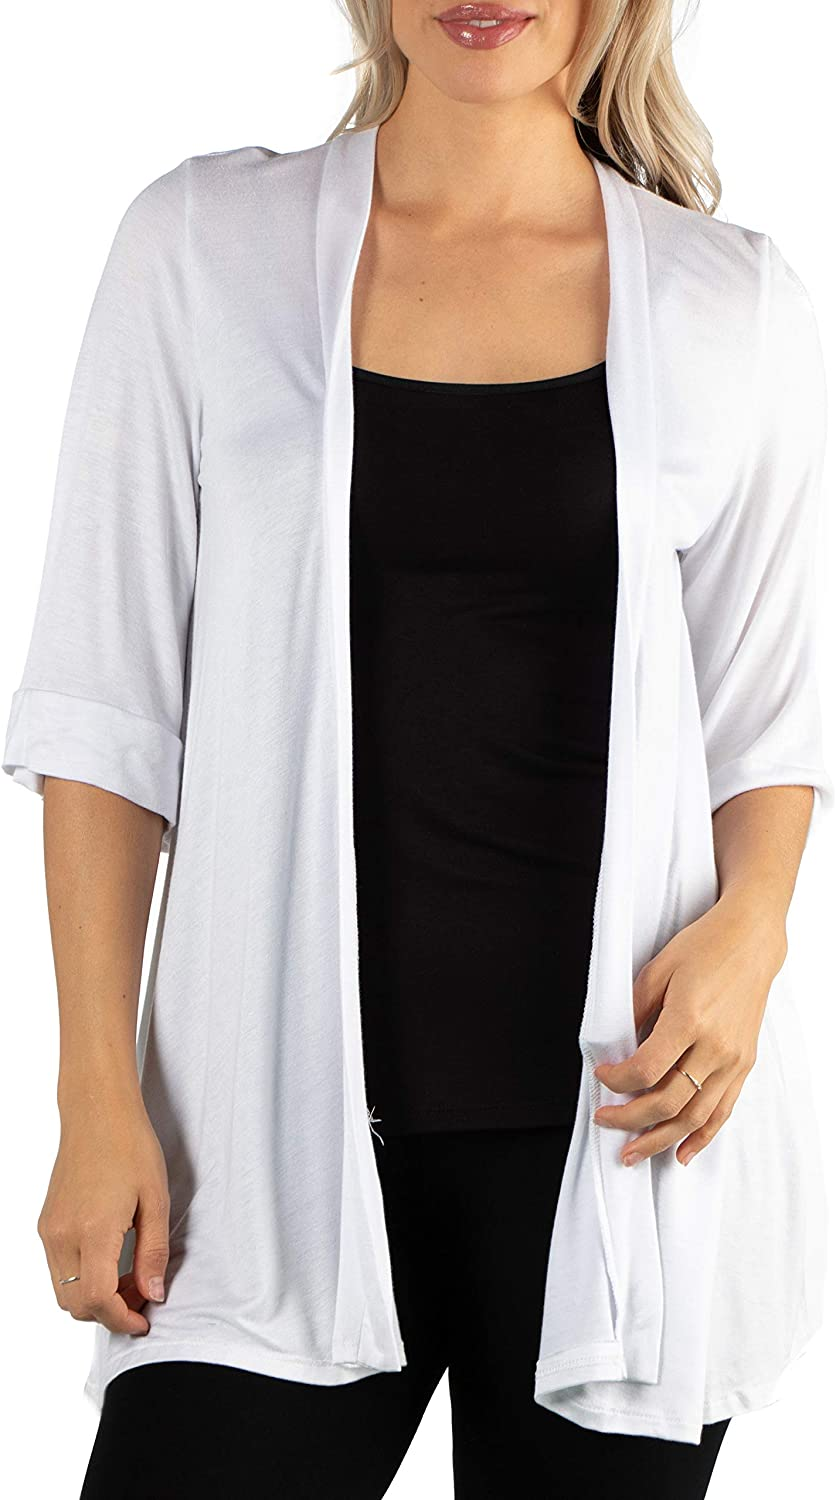 24seven Comfort Apparel Womens Long Lightweight Elbow Length 3/4 Sleeve Open Front Cardigan Shrug Made in USA -Small-1X